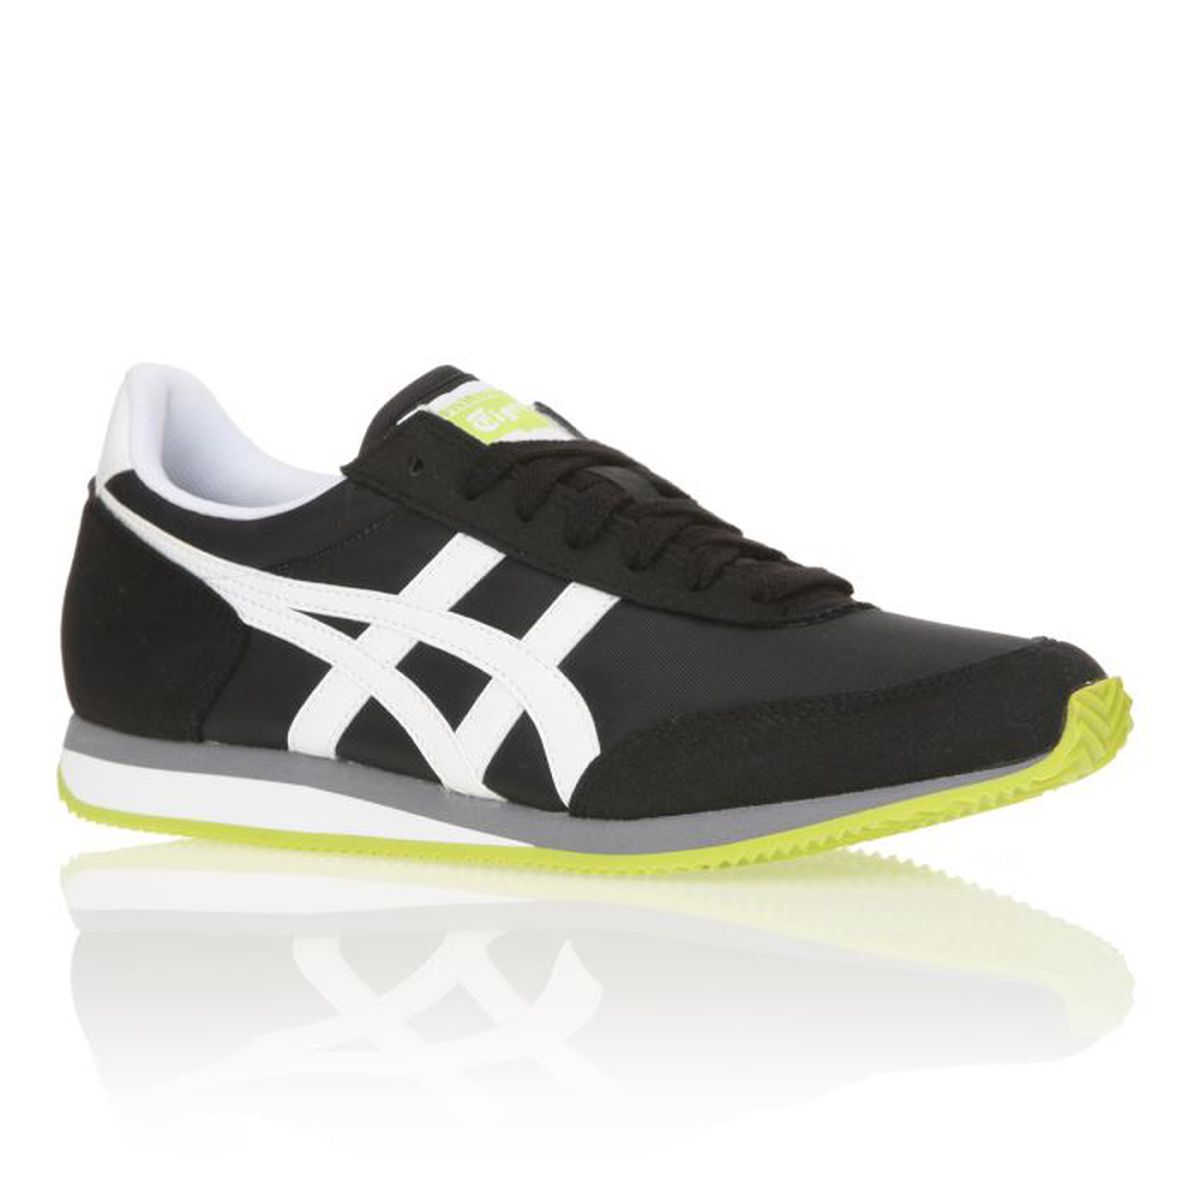 asics onitsuka tiger pas cher jordan pas cher pour femme. Black Bedroom Furniture Sets. Home Design Ideas